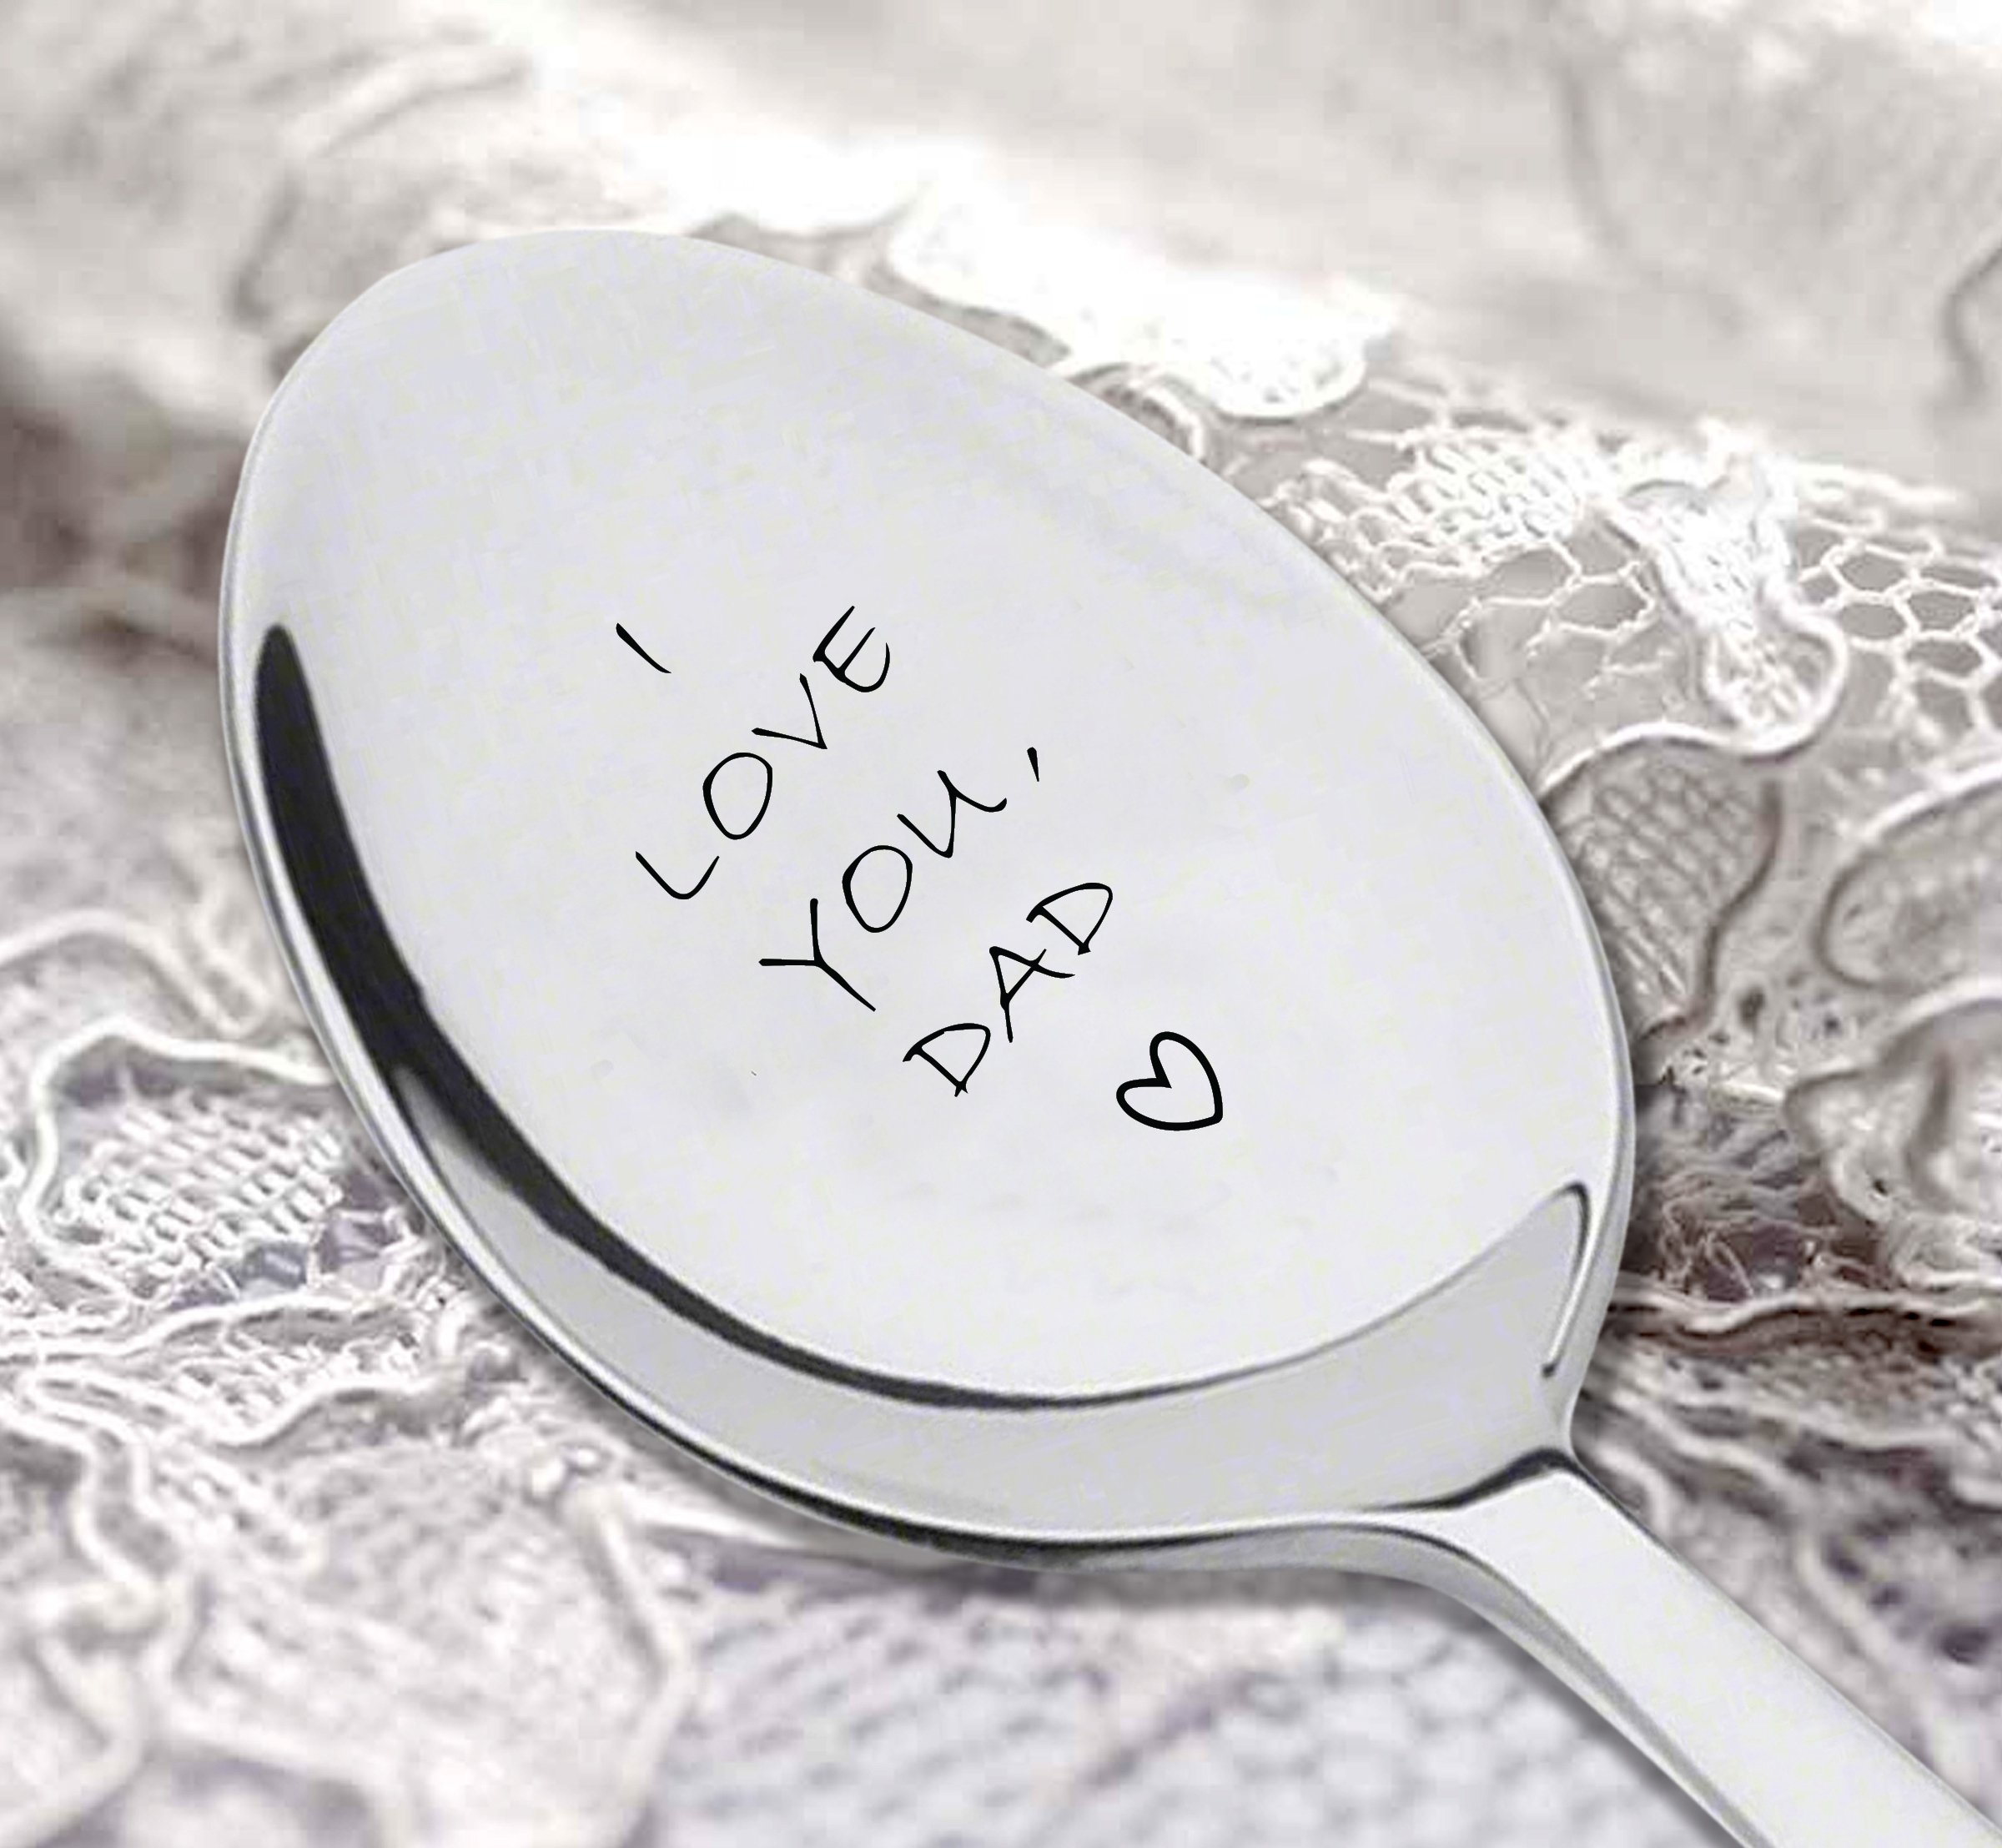 I love you dad Engraved Spoon,dads ice cream spoon,best selling items,gifts for dad,funny gift for dad,dad gifts,new dad,daddy gifts,daddy gifts from son